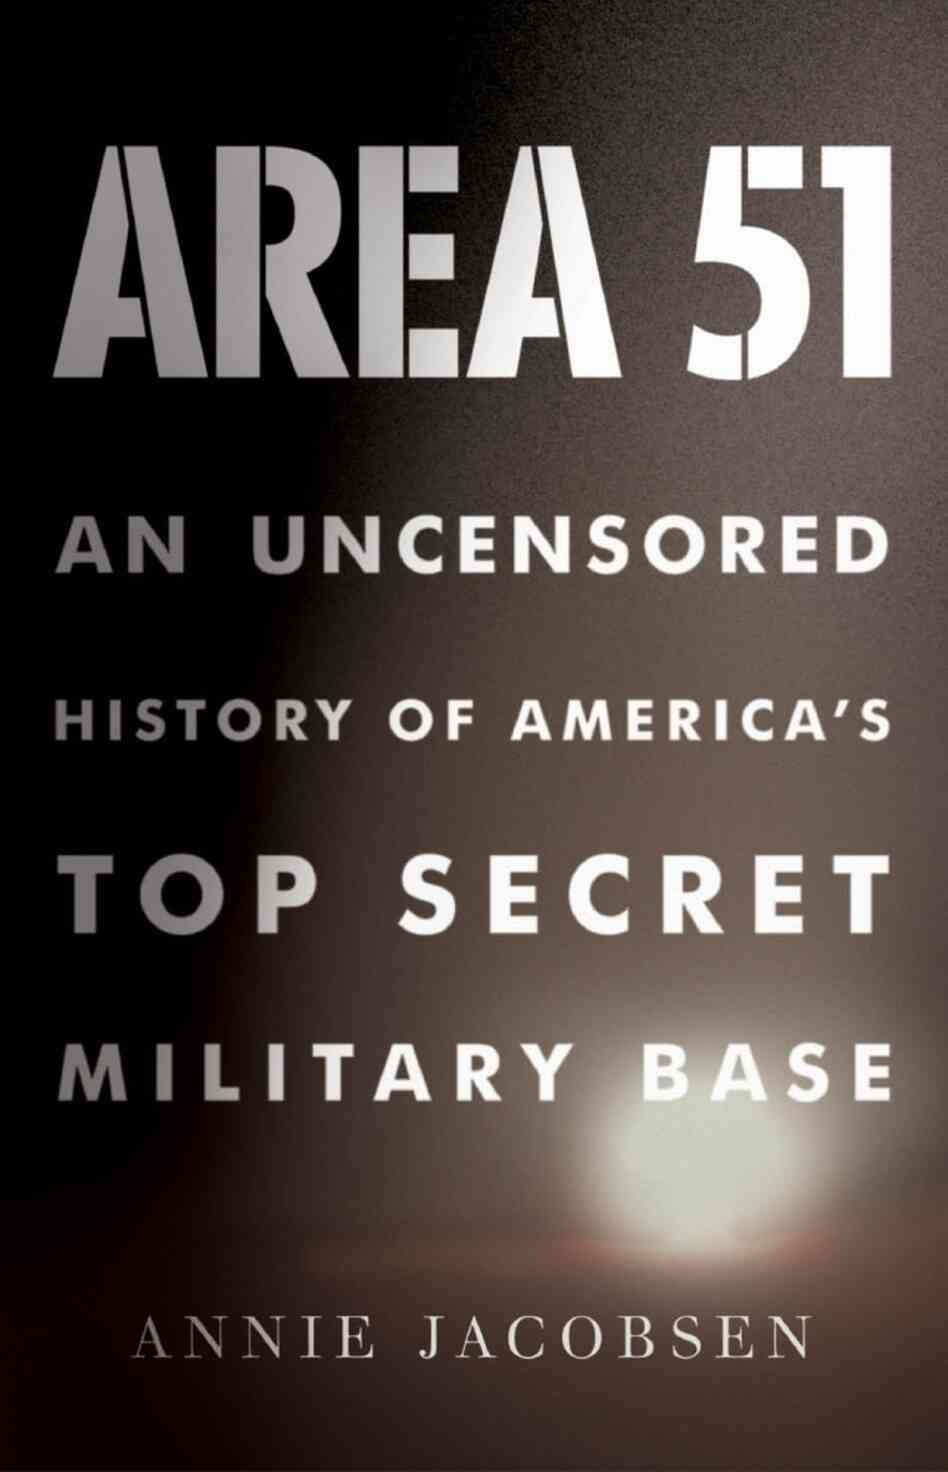 a history of area 51 Area 51 was the single most important cold war facility as it was set up to push science faster and further than the soviet union, says jacobsen, author of area 51: an uncensored history.